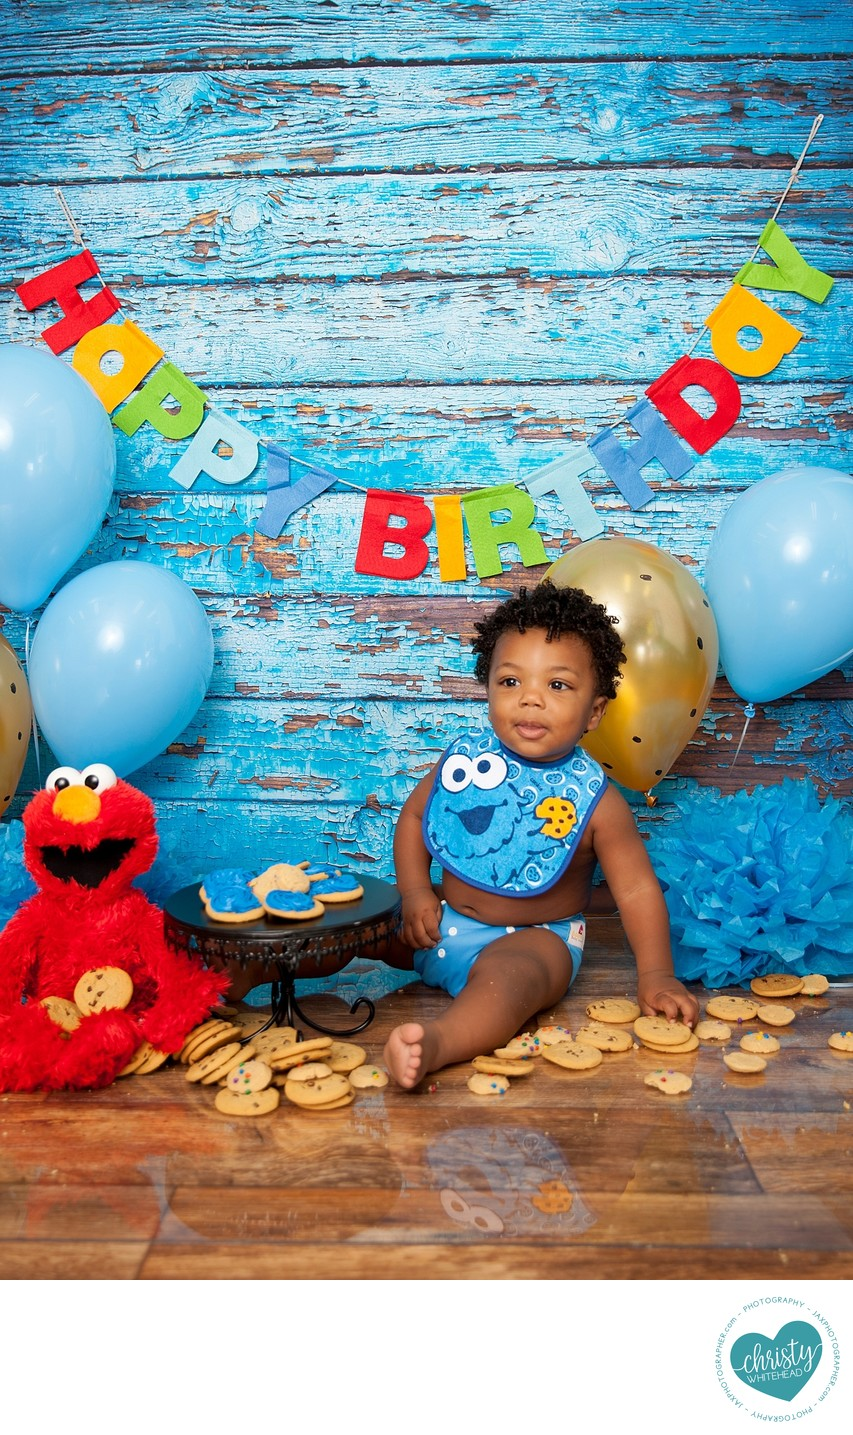 Baby Cookie Monster Photo Shot Florida